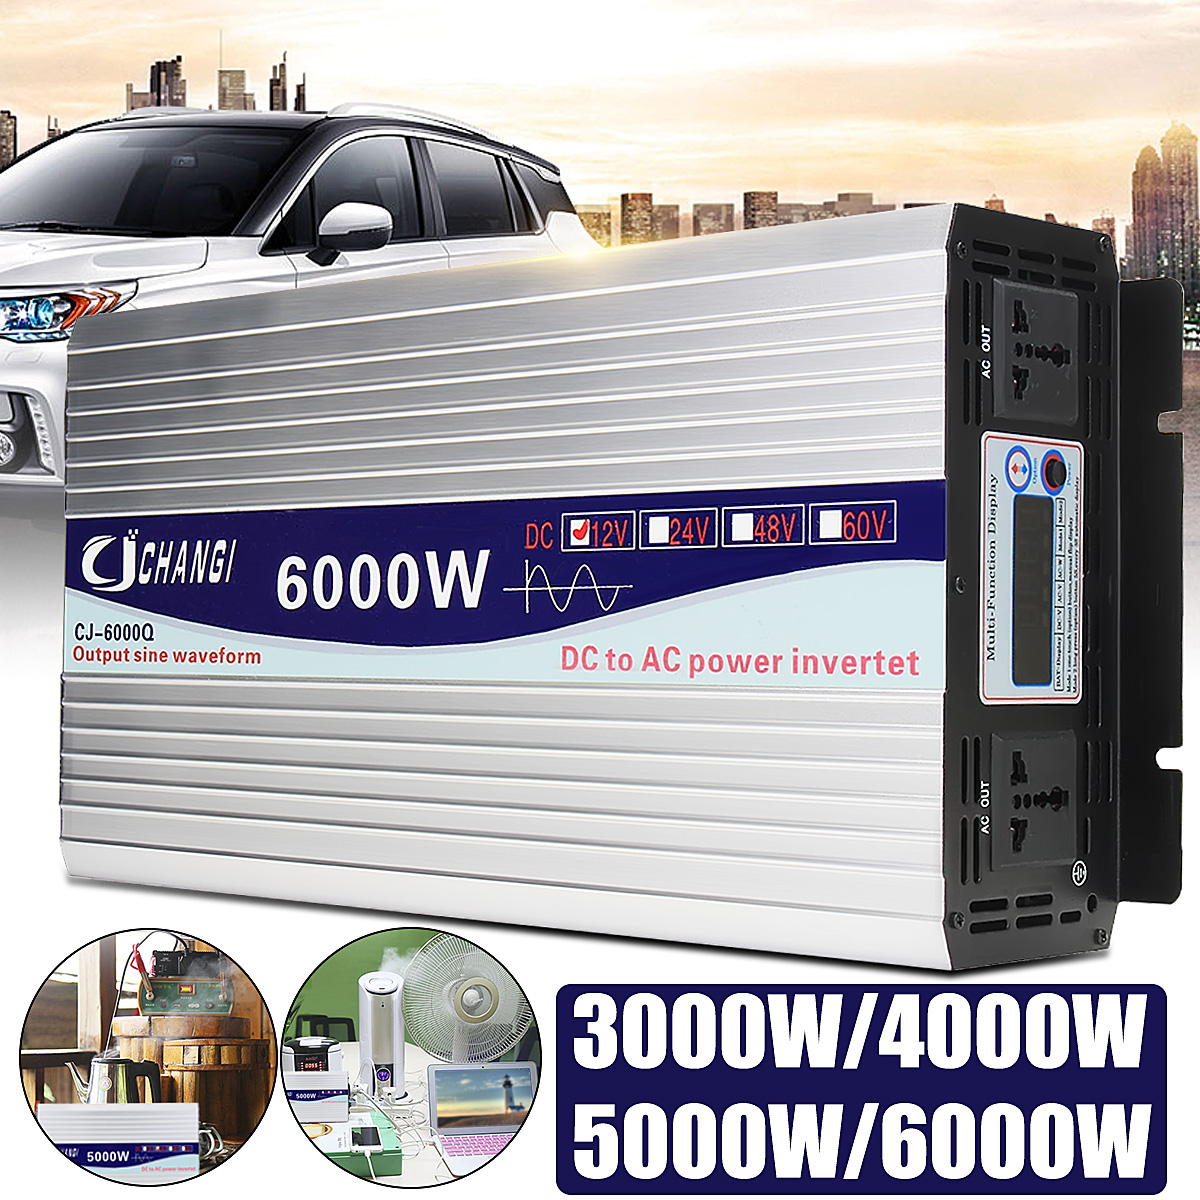 inverter-12v-to-220v-3000-4000-5000-6000w-voltage-transformer-power-solar-inverter-pure-sine-wave-converter-adapter-lcd-screen